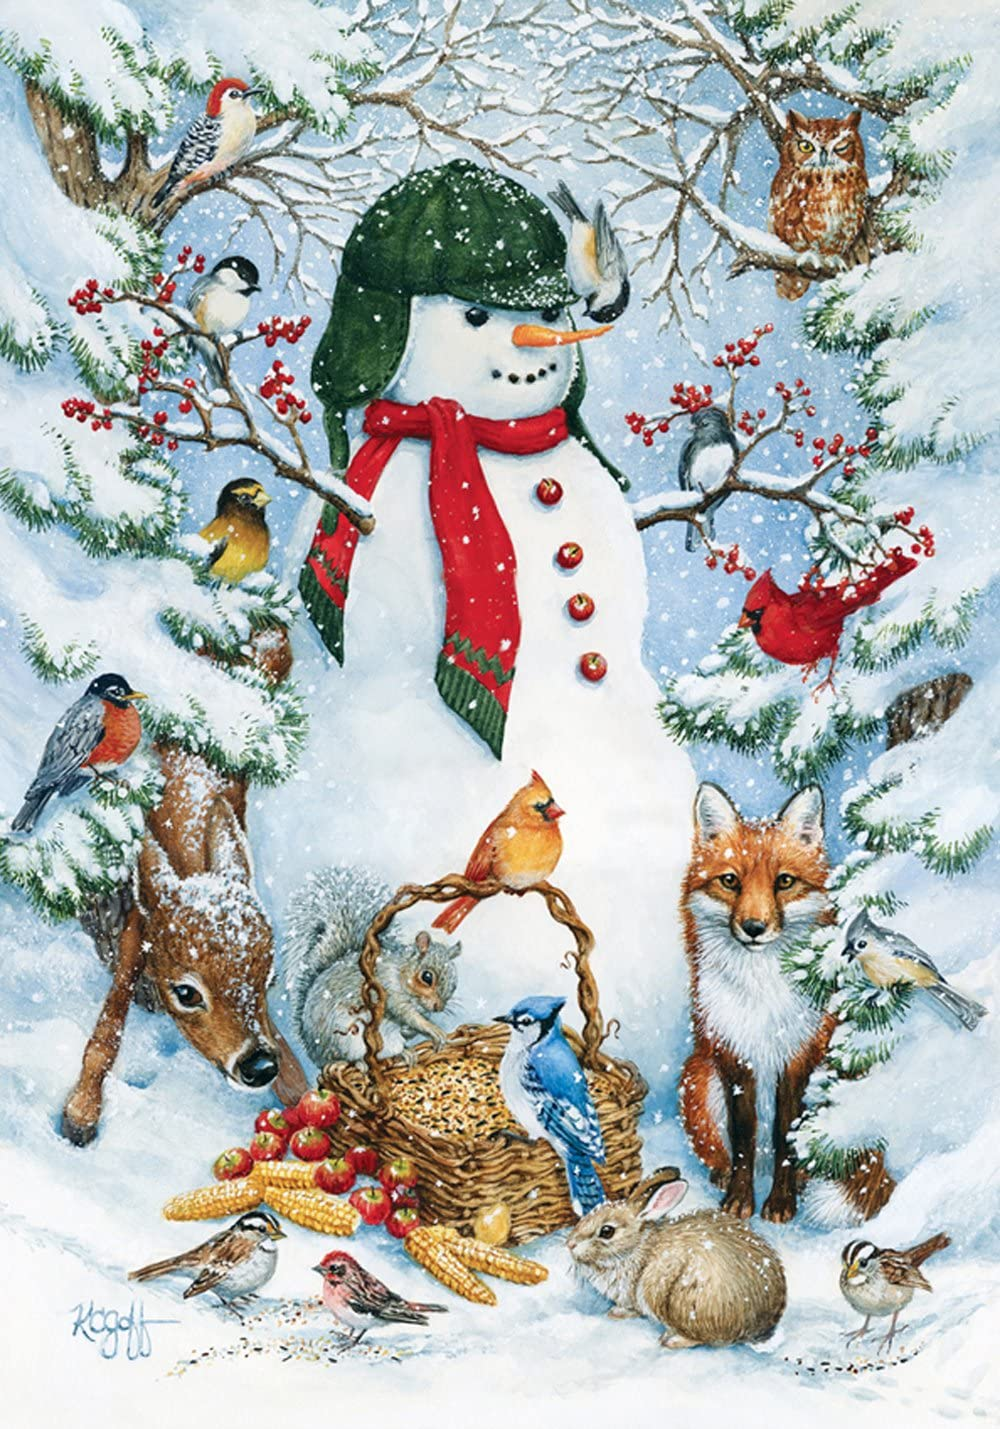 Toland Home Garden Woodland Snowman 28 x 40 Inch Decorative Winter Snow Forest Animal House Flag - 109377